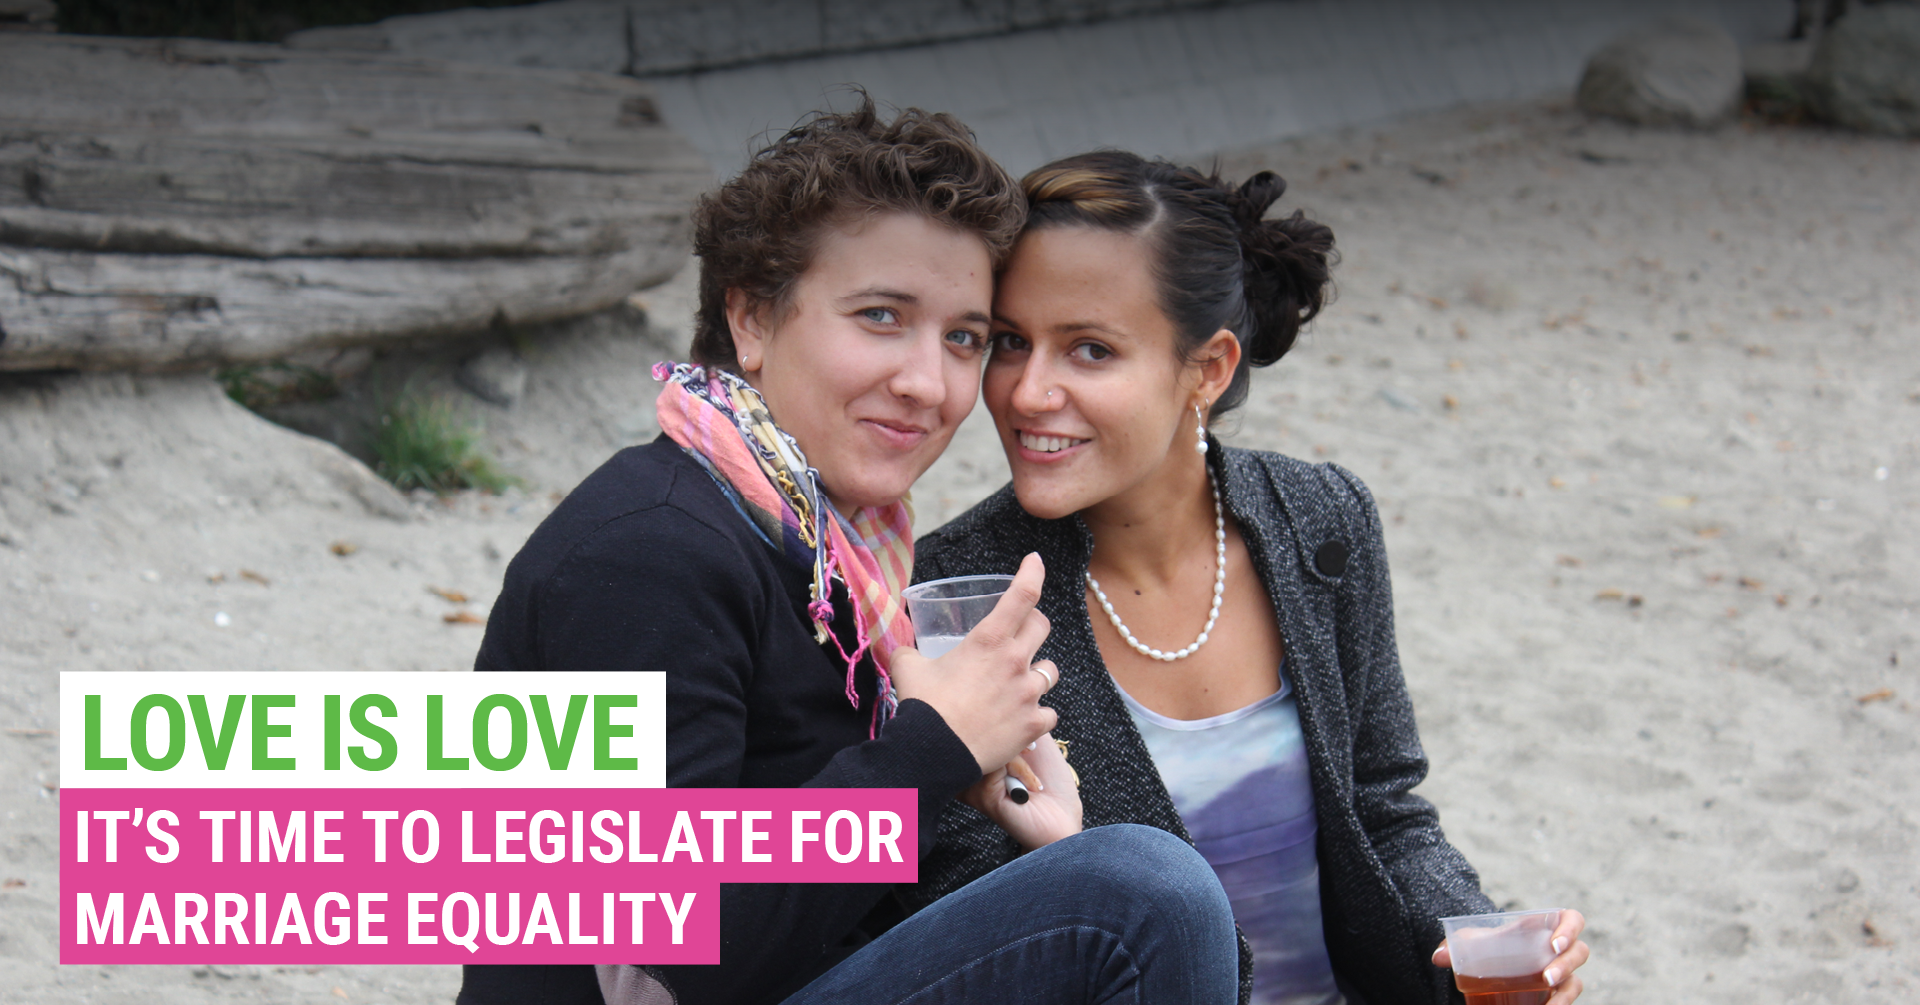 Love is Love. The Greens get marriage equality through parliament.